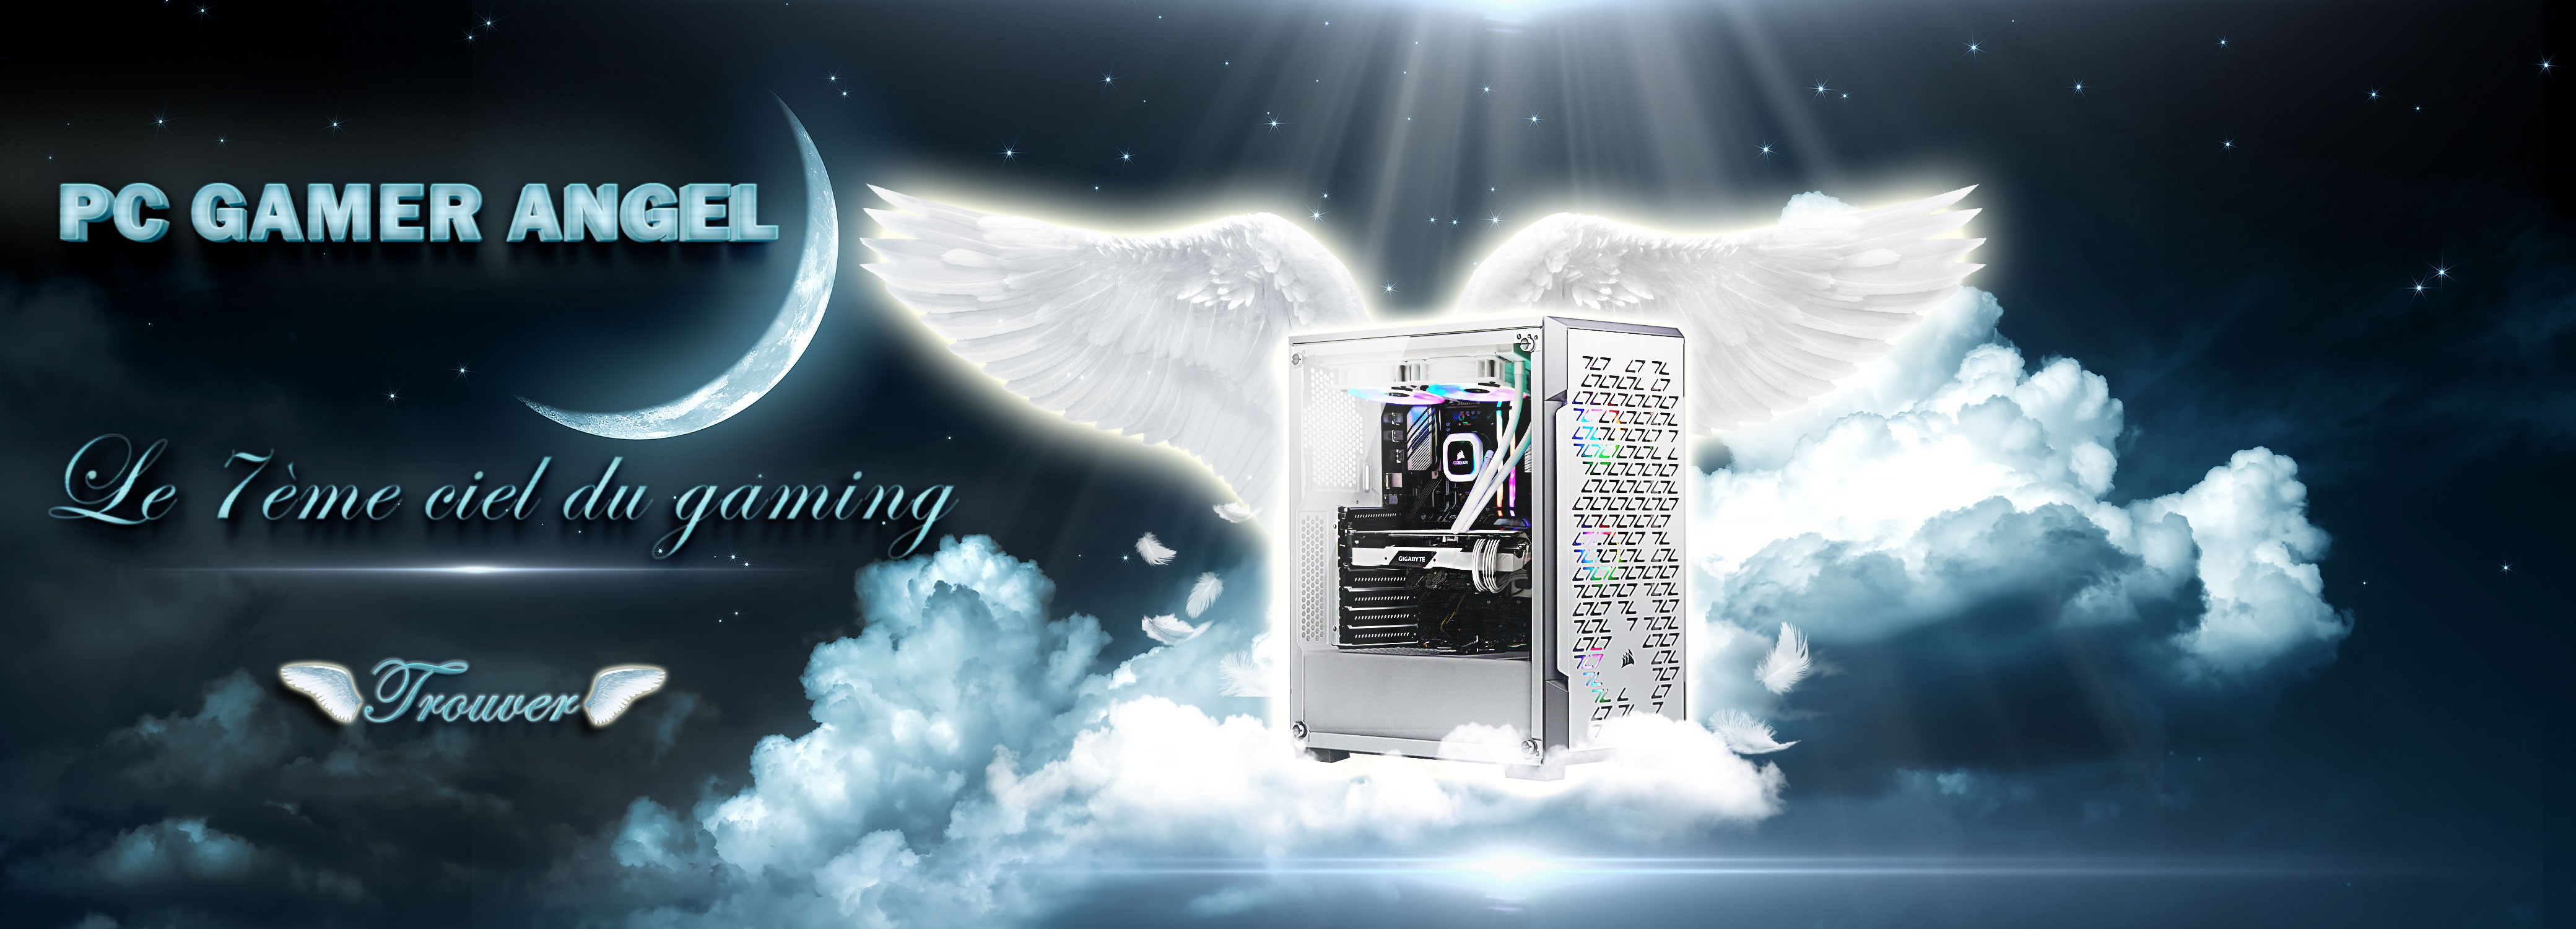 pc gaming angel